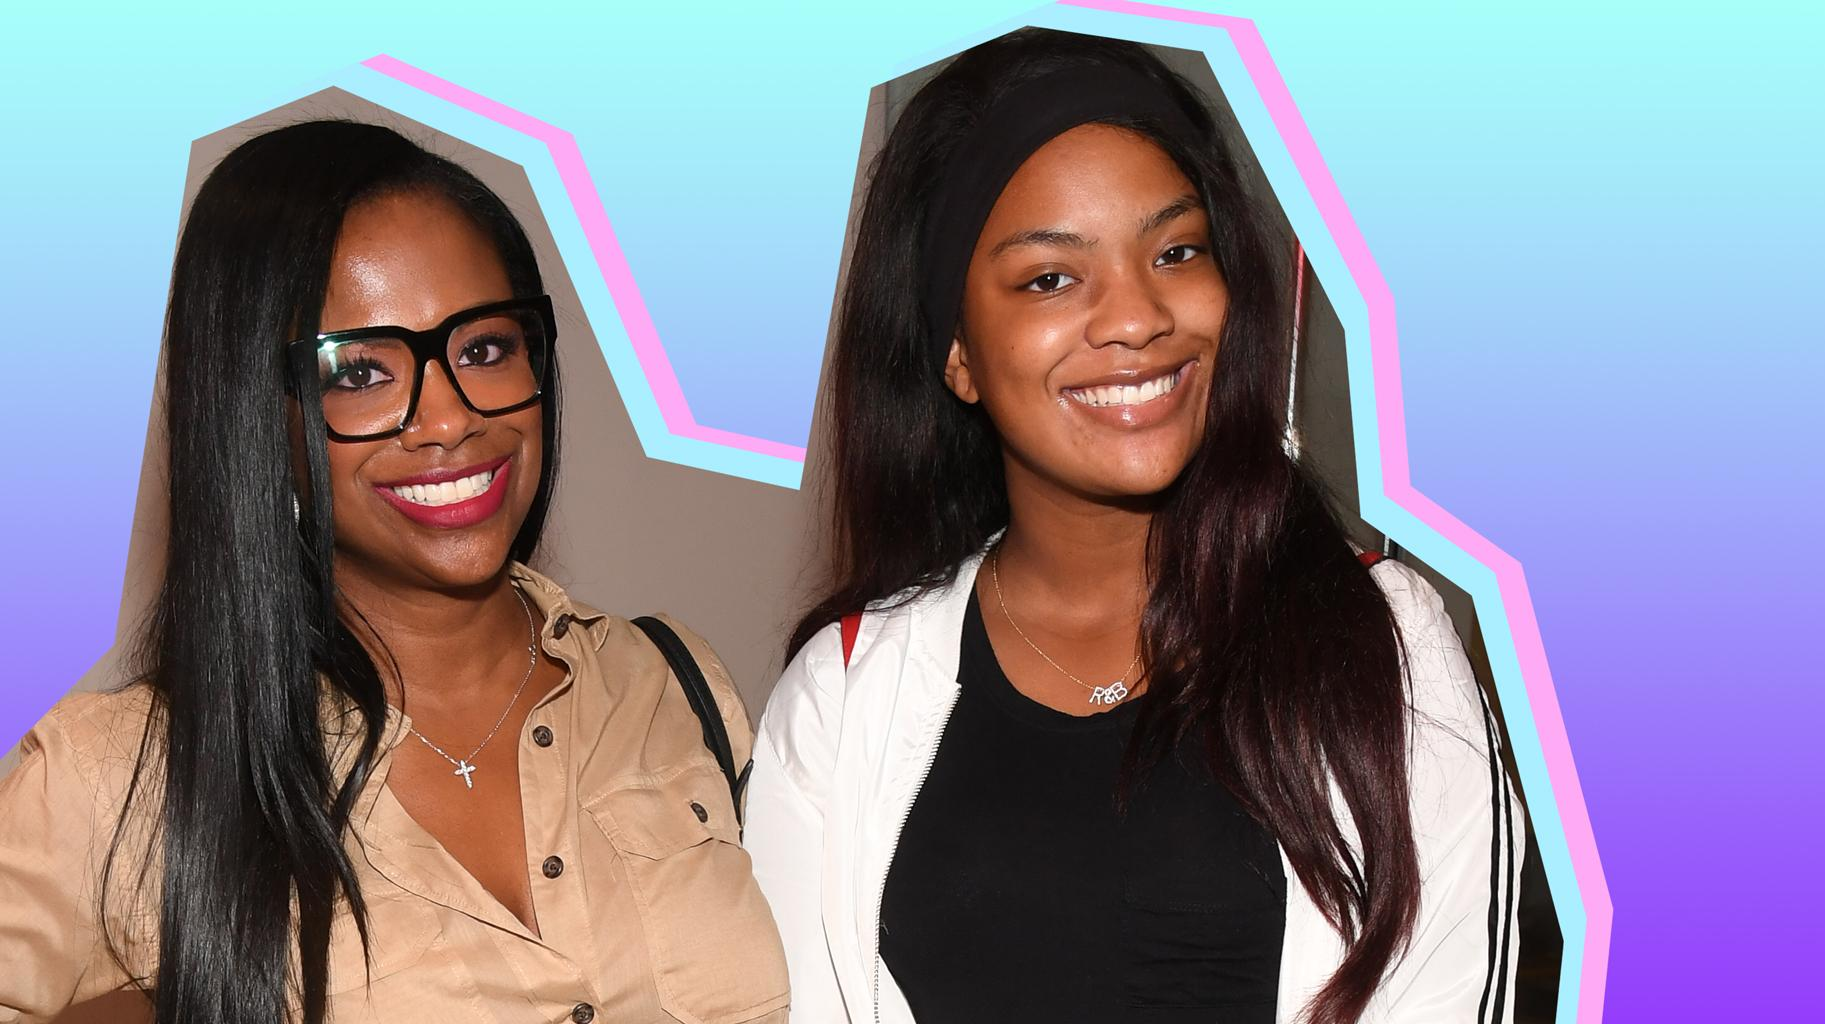 Riley Burruss Acknowledges That She Is 'Privileged' In Speak On It Video